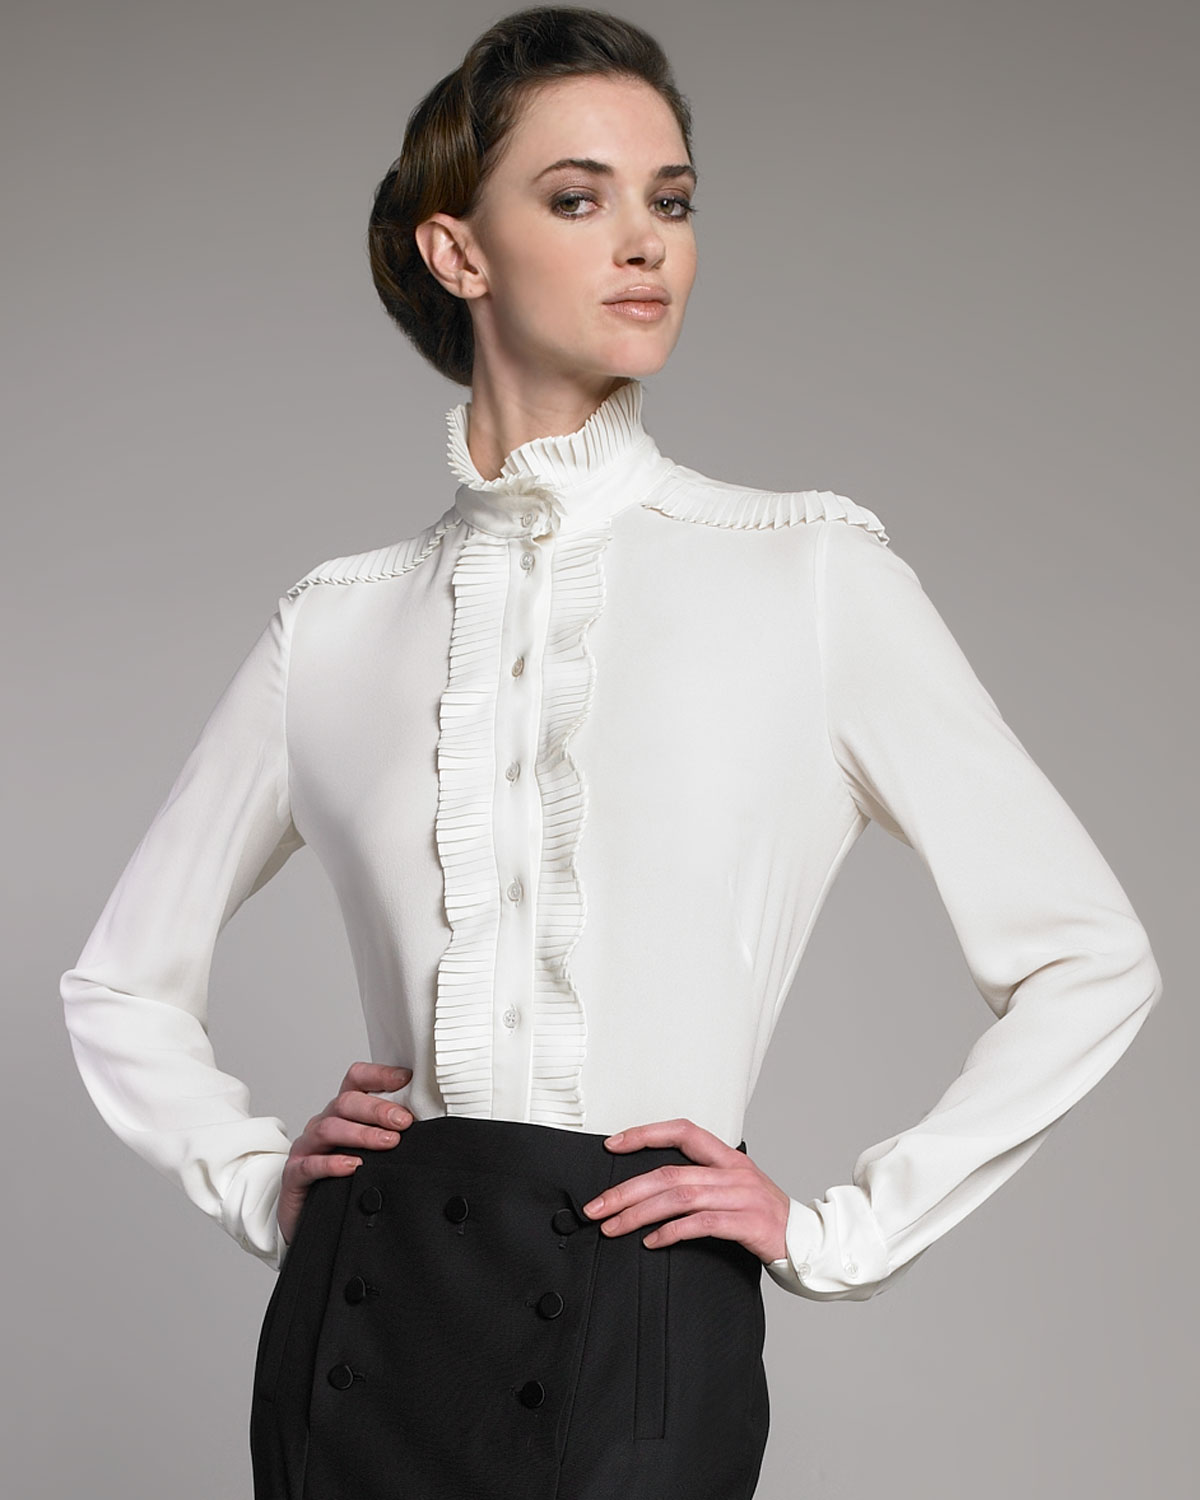 Stand Collar Blouse Designs Images : Lyst alexander mcqueen plisse stand collar blouse in white